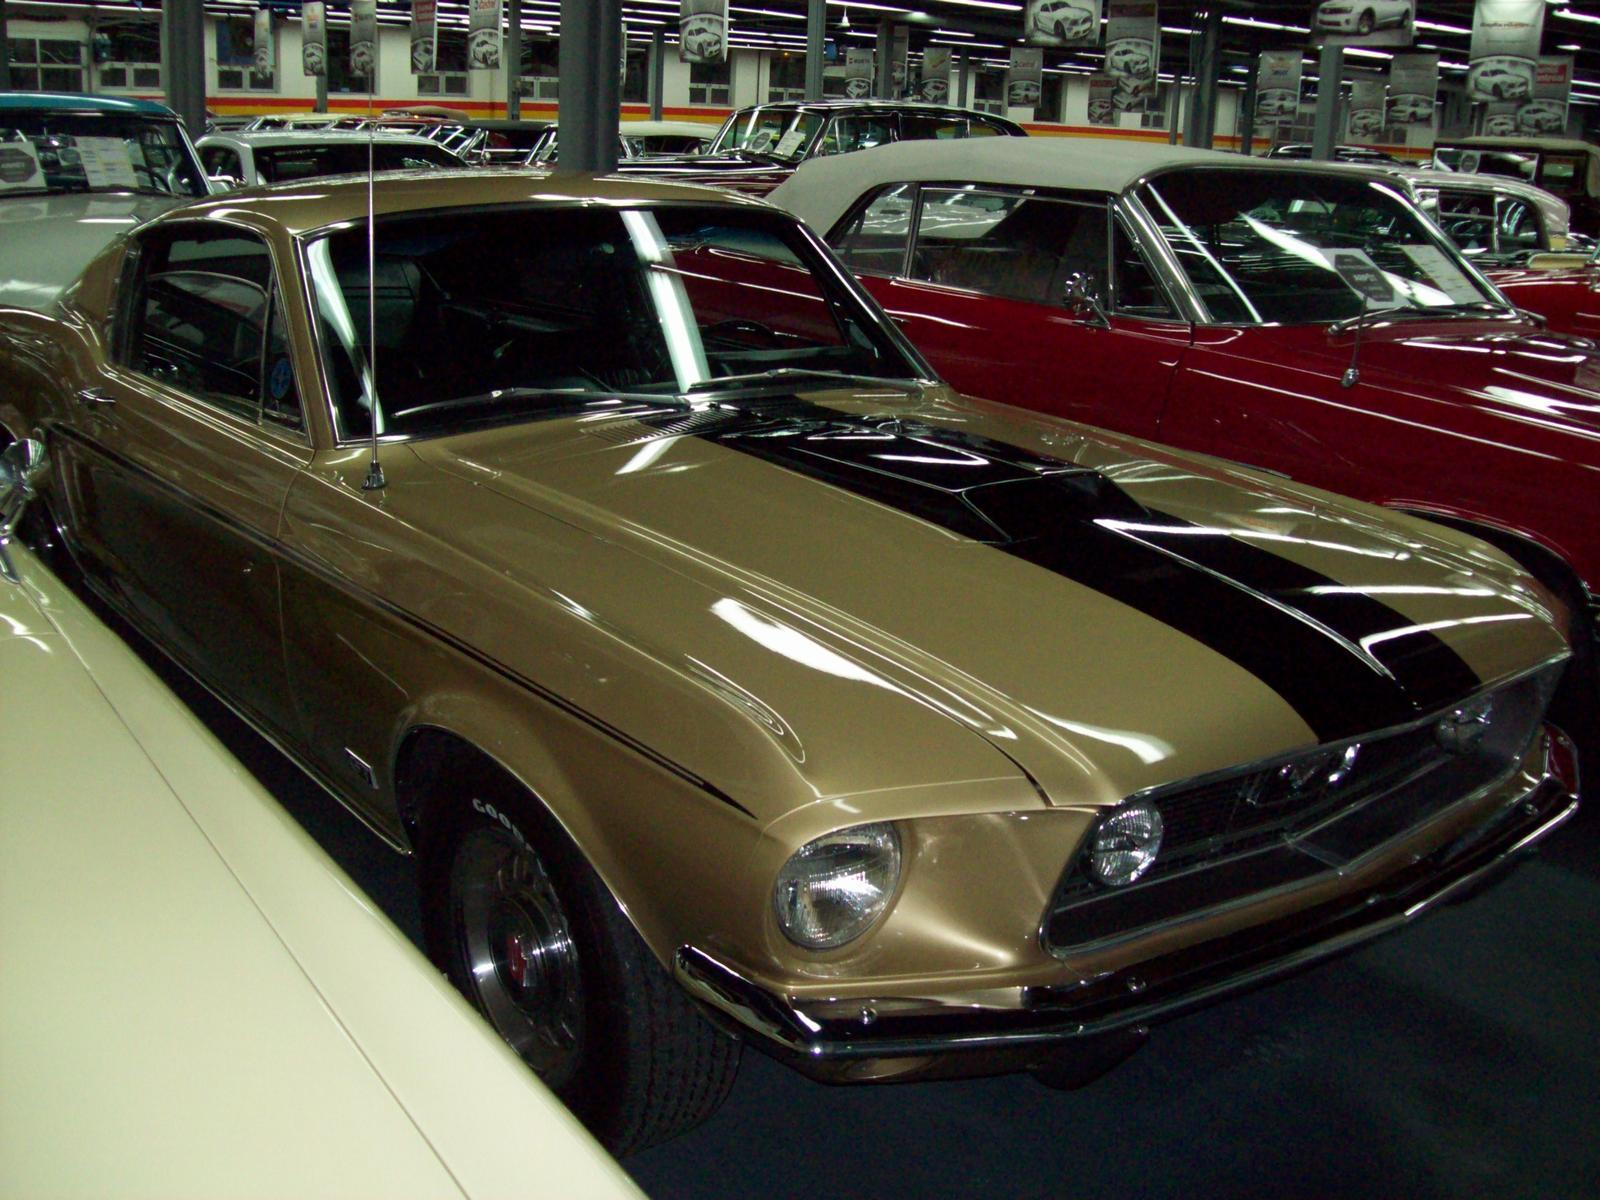 Used 1968 ford mustang gt fastback 428 r code for sale in saint léonard john scotti classic cars h1r 2y7 2070815